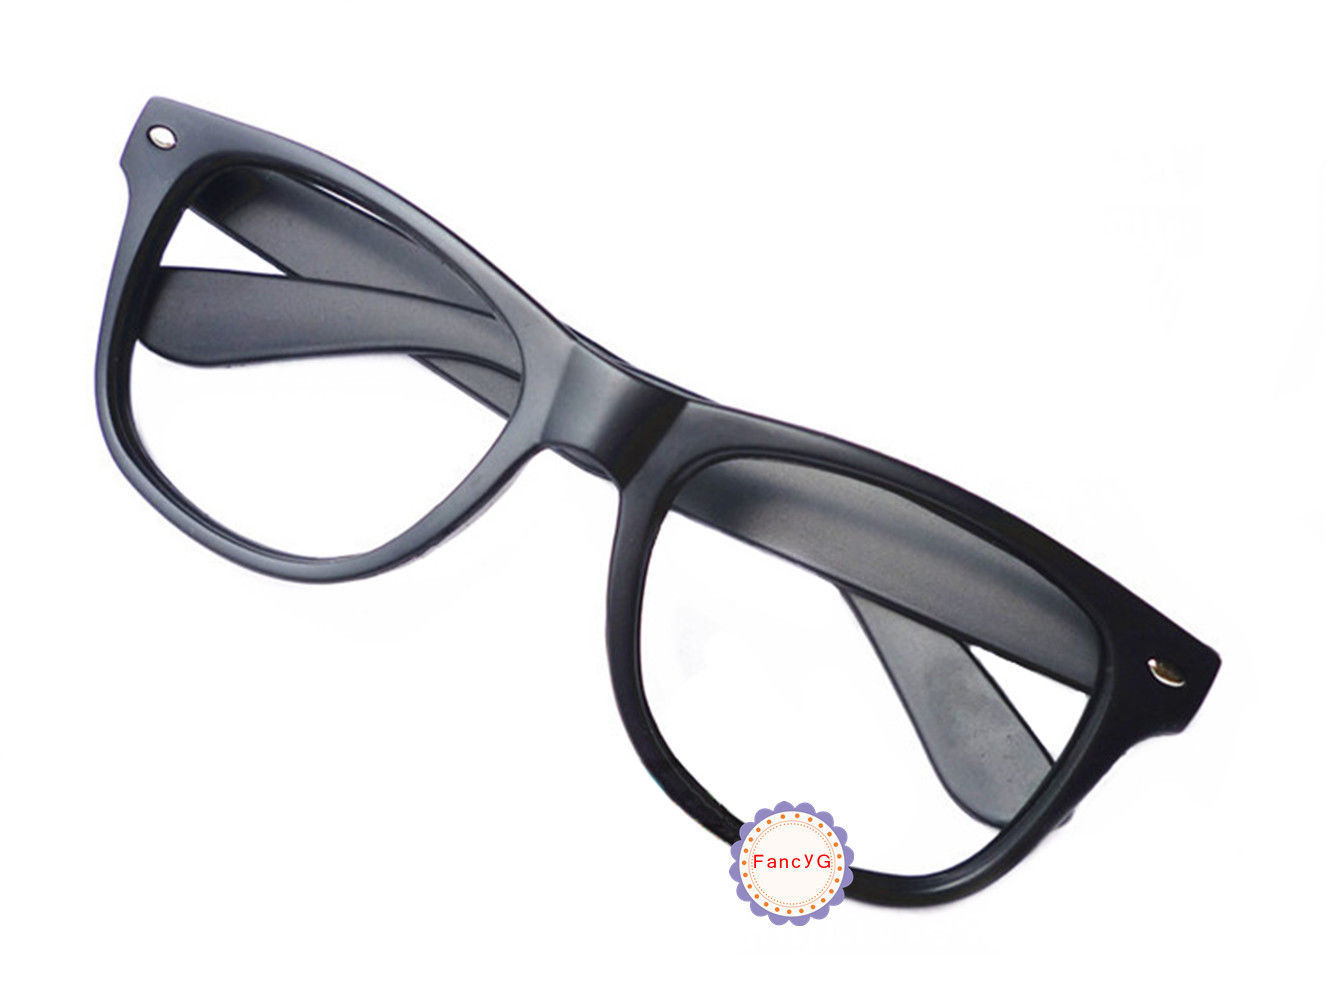 Matte Black Retro Classic Fashion Glasses Frame Unisex Eyewear No Lens